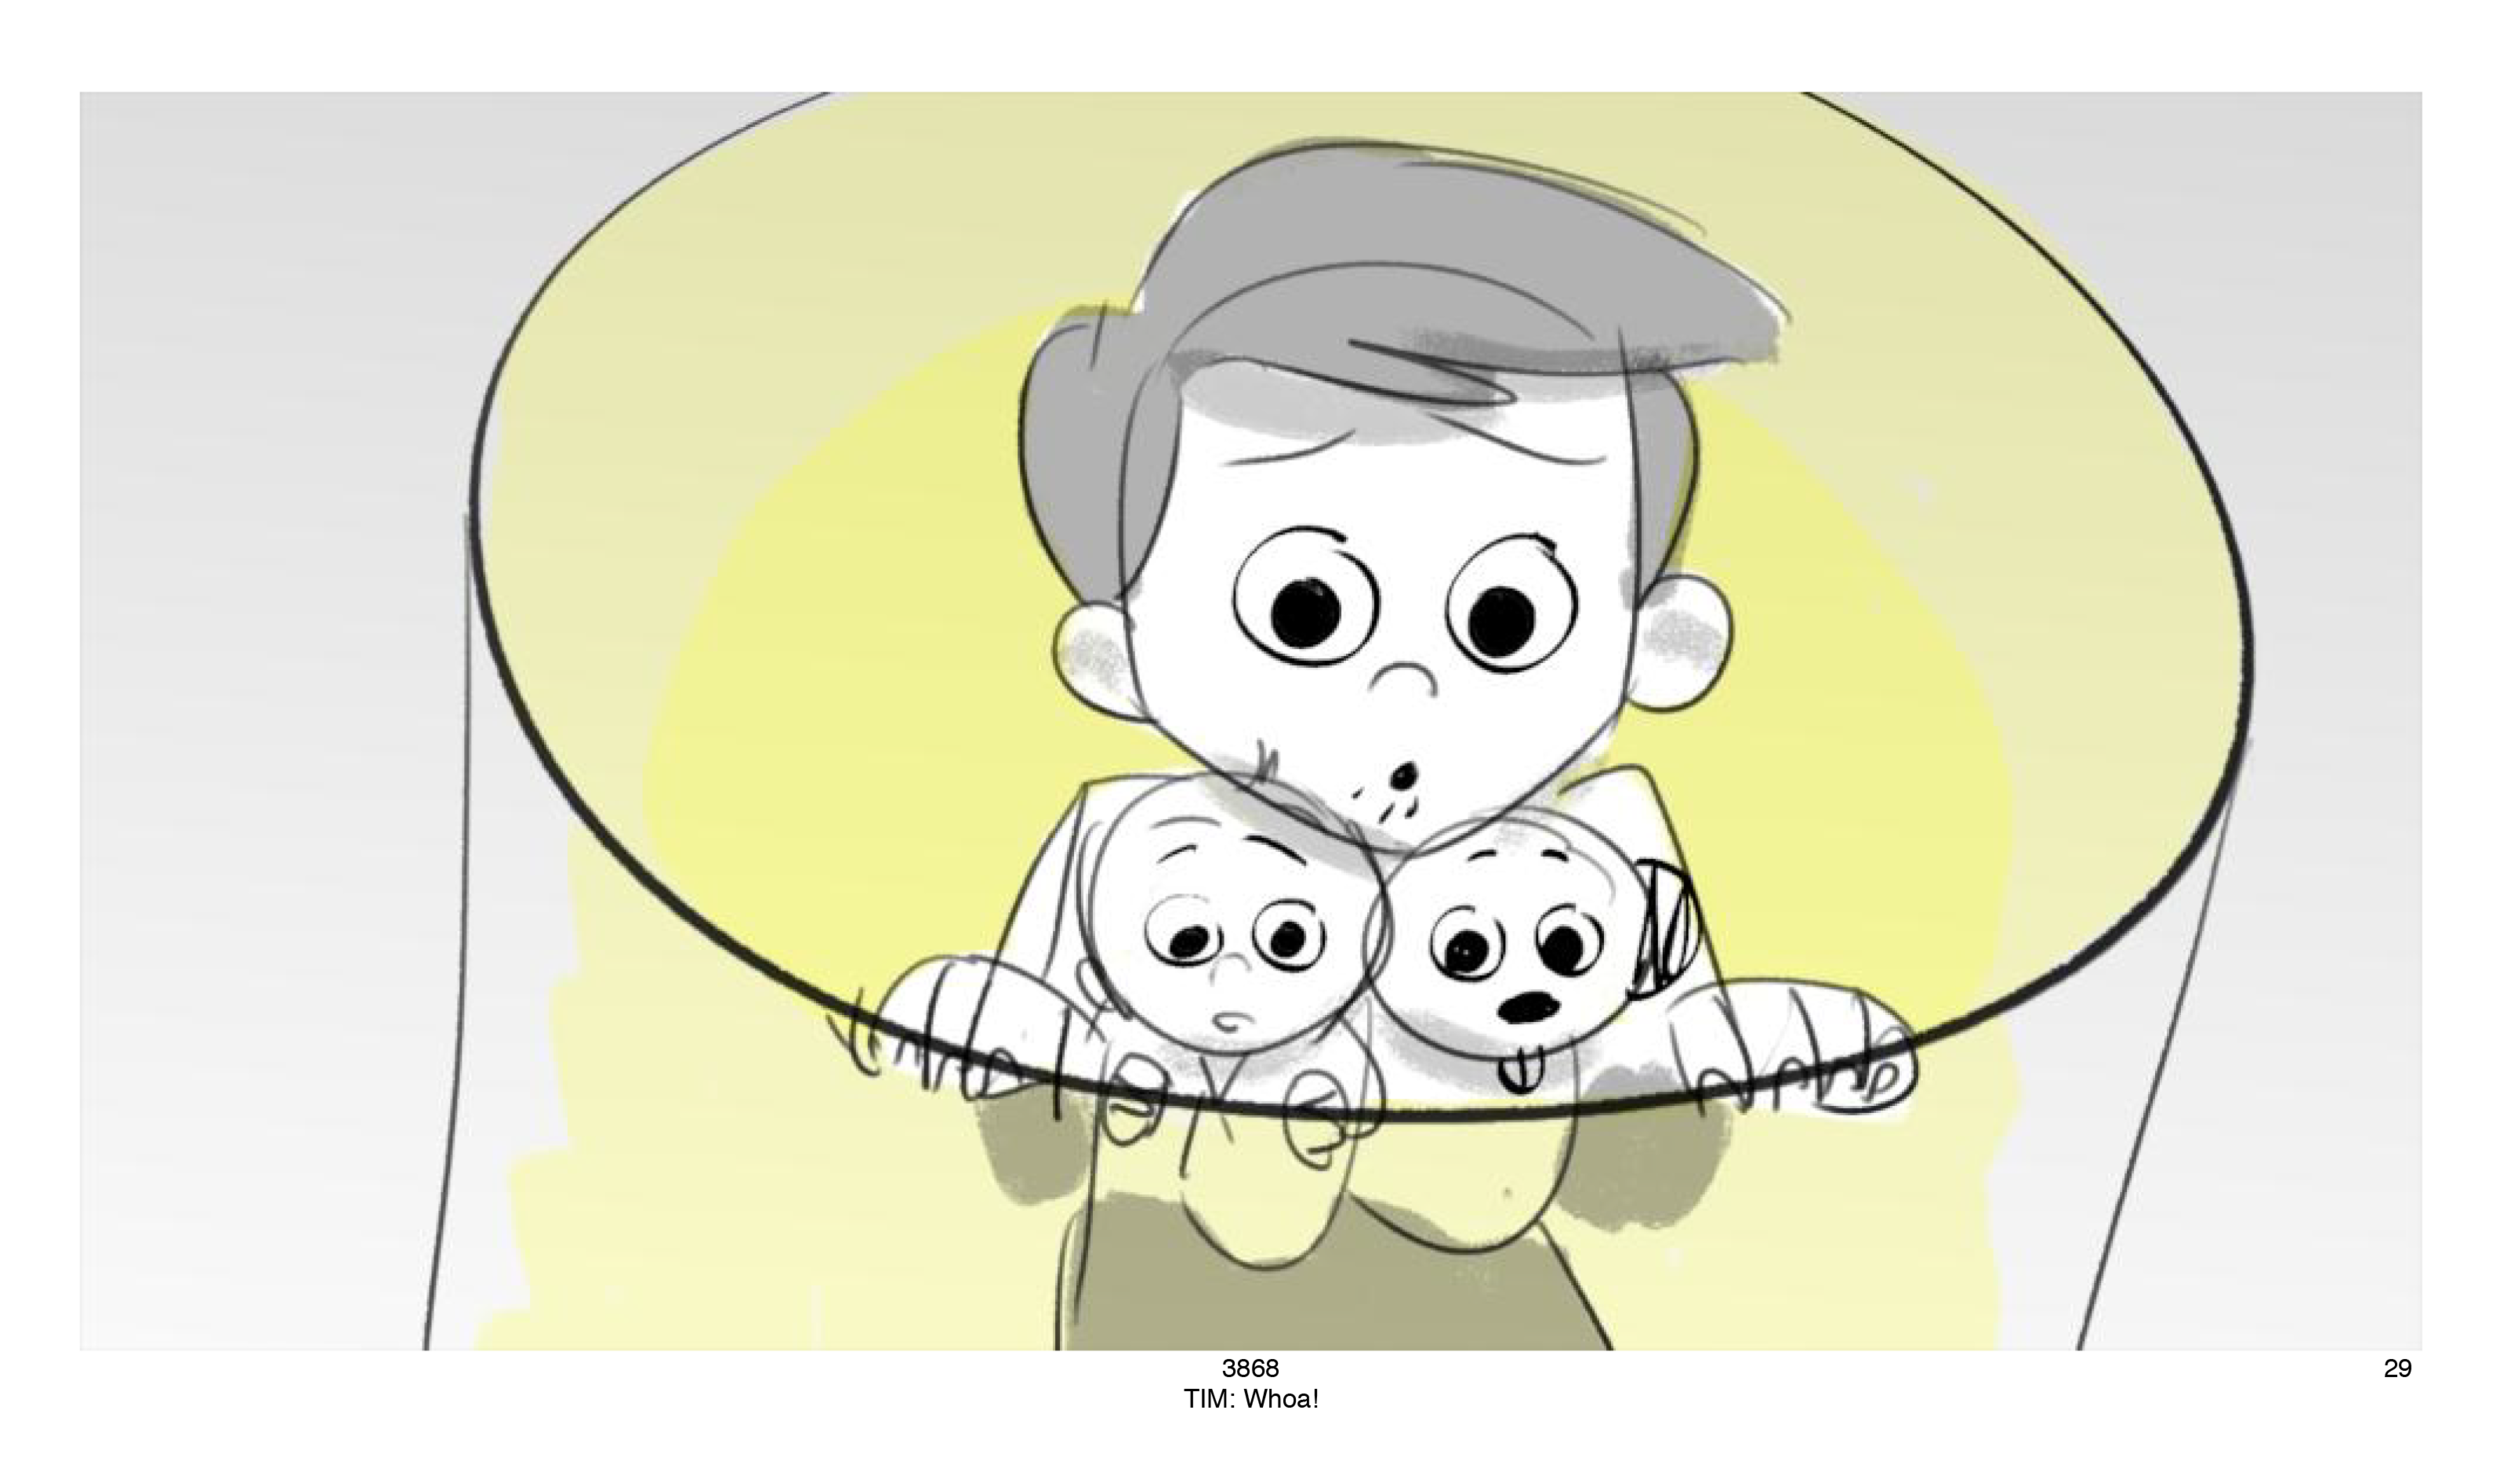 BossBaby_029.png